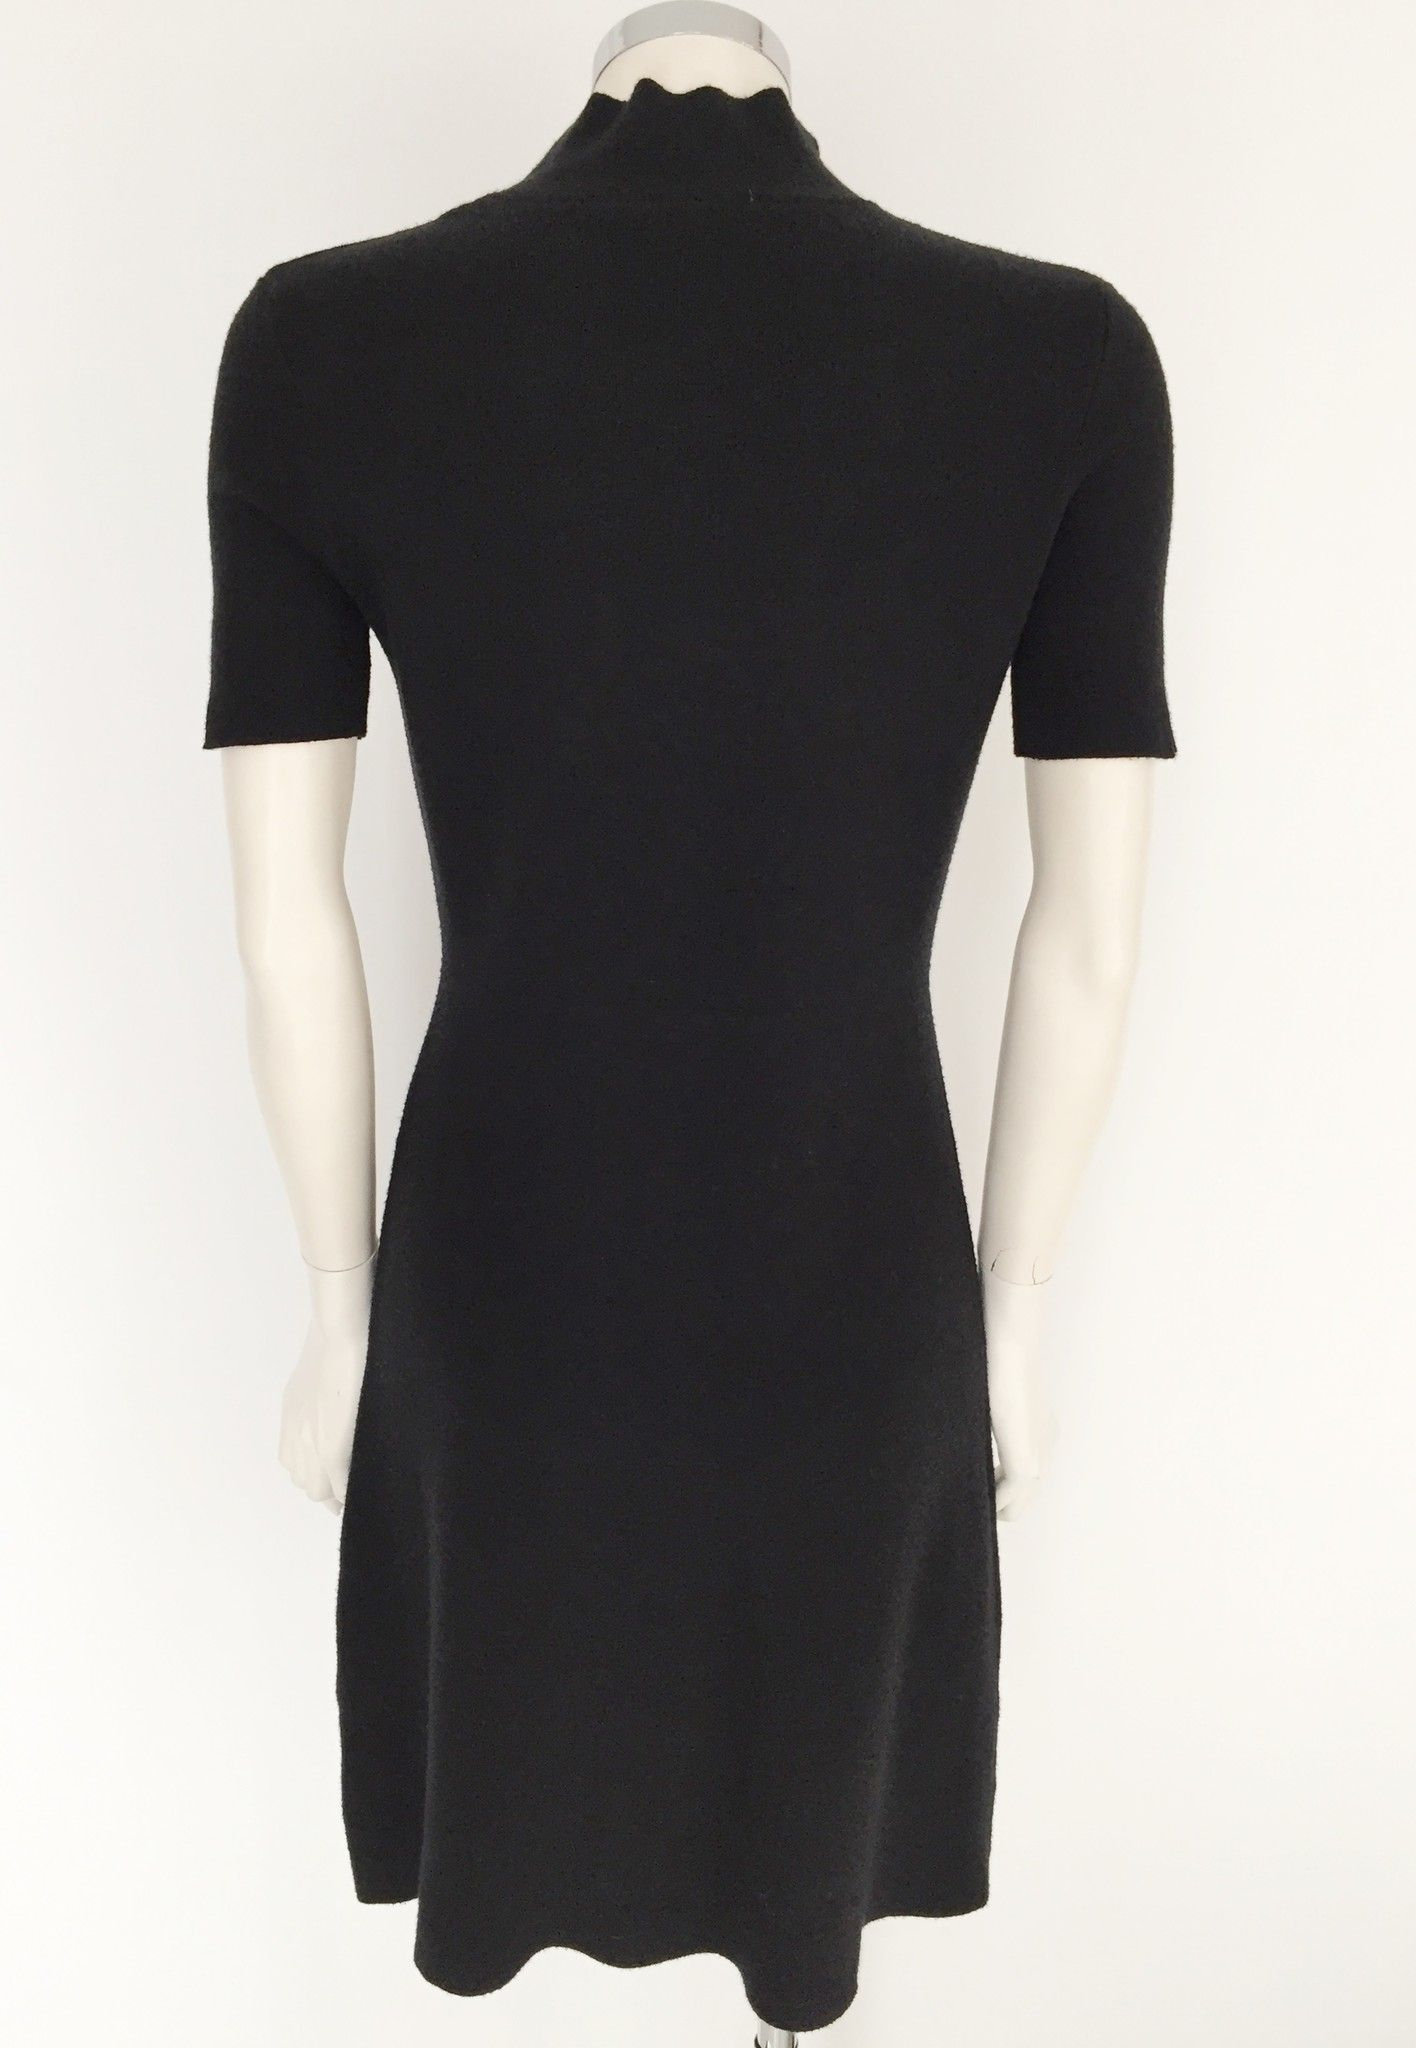 Sandro Ferrone Short sleeve dress with high neck Cod.C7I7